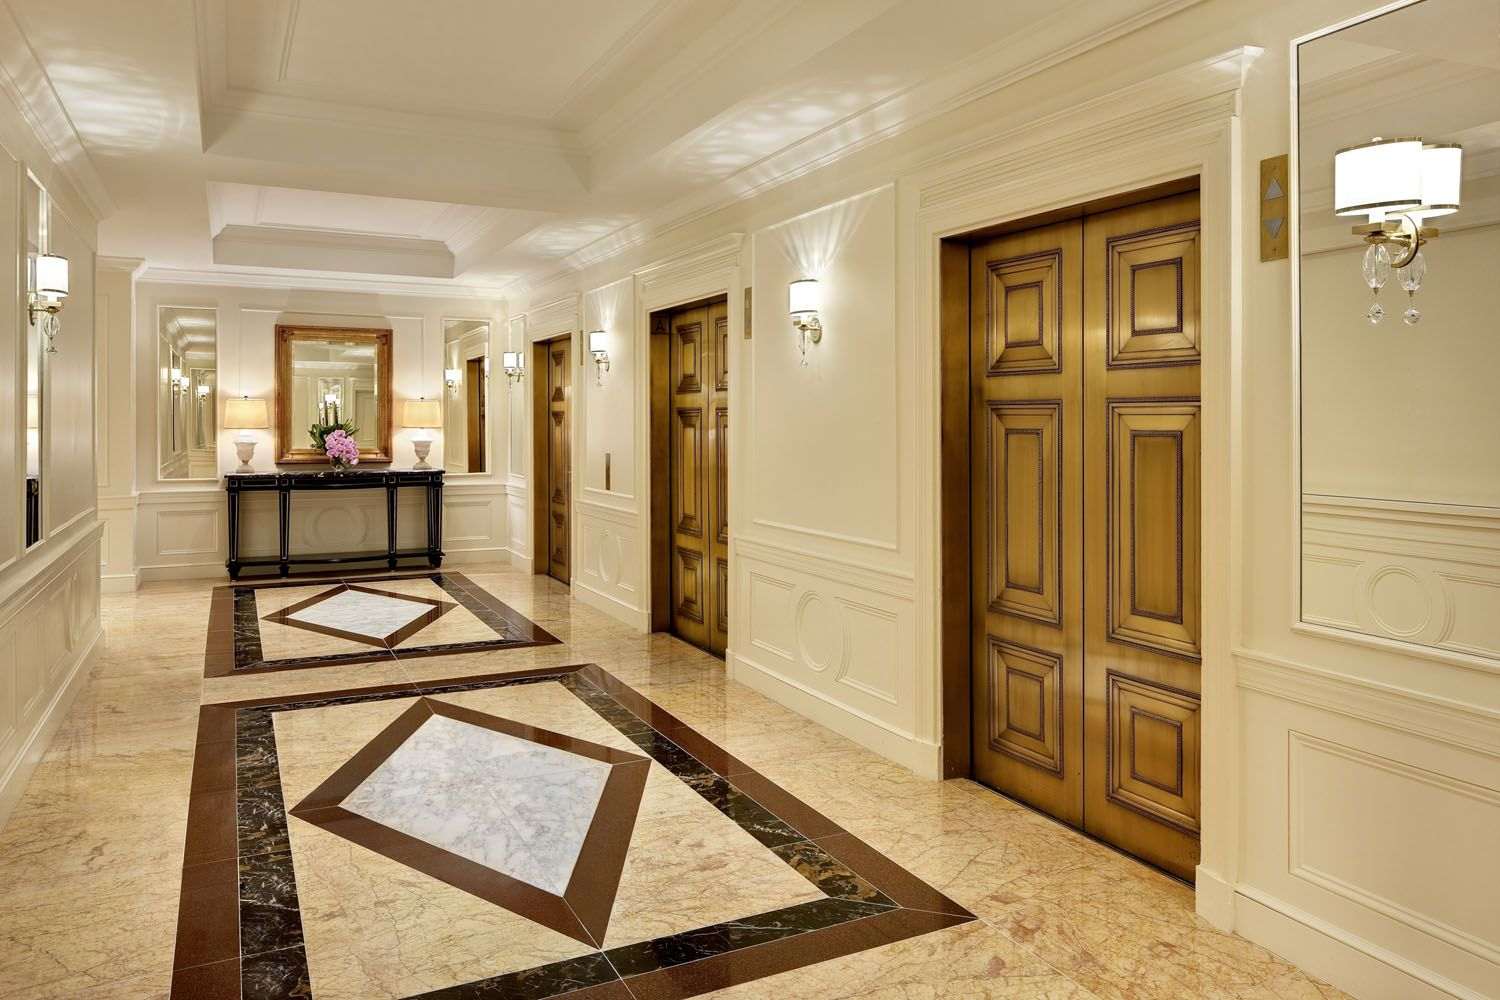 Foyer Flooring : Http lottenypalace wp content uploads